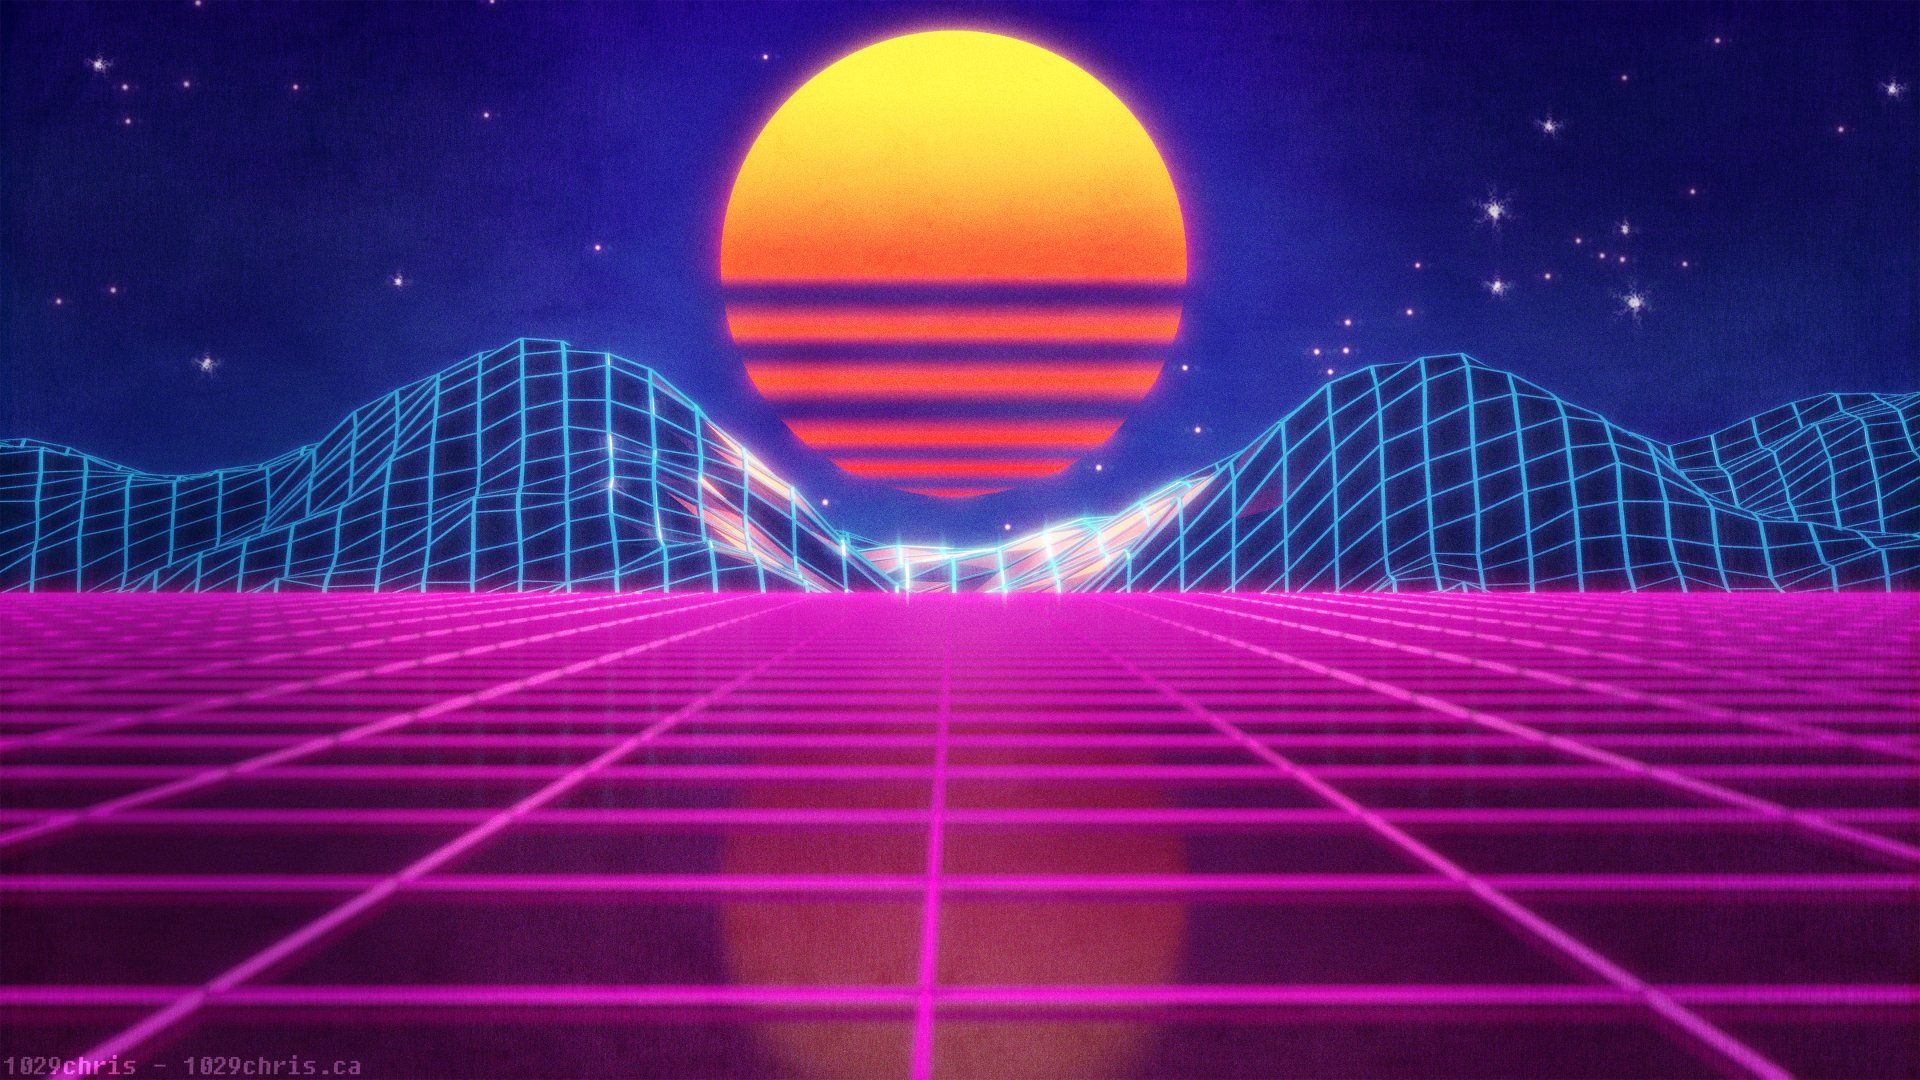 4320x2430 Retro Wave Wallpaper Background Image View Download Comment And Rate Wallpaper Abyss Background Images Wallpapers Neon Wallpaper Retro Waves